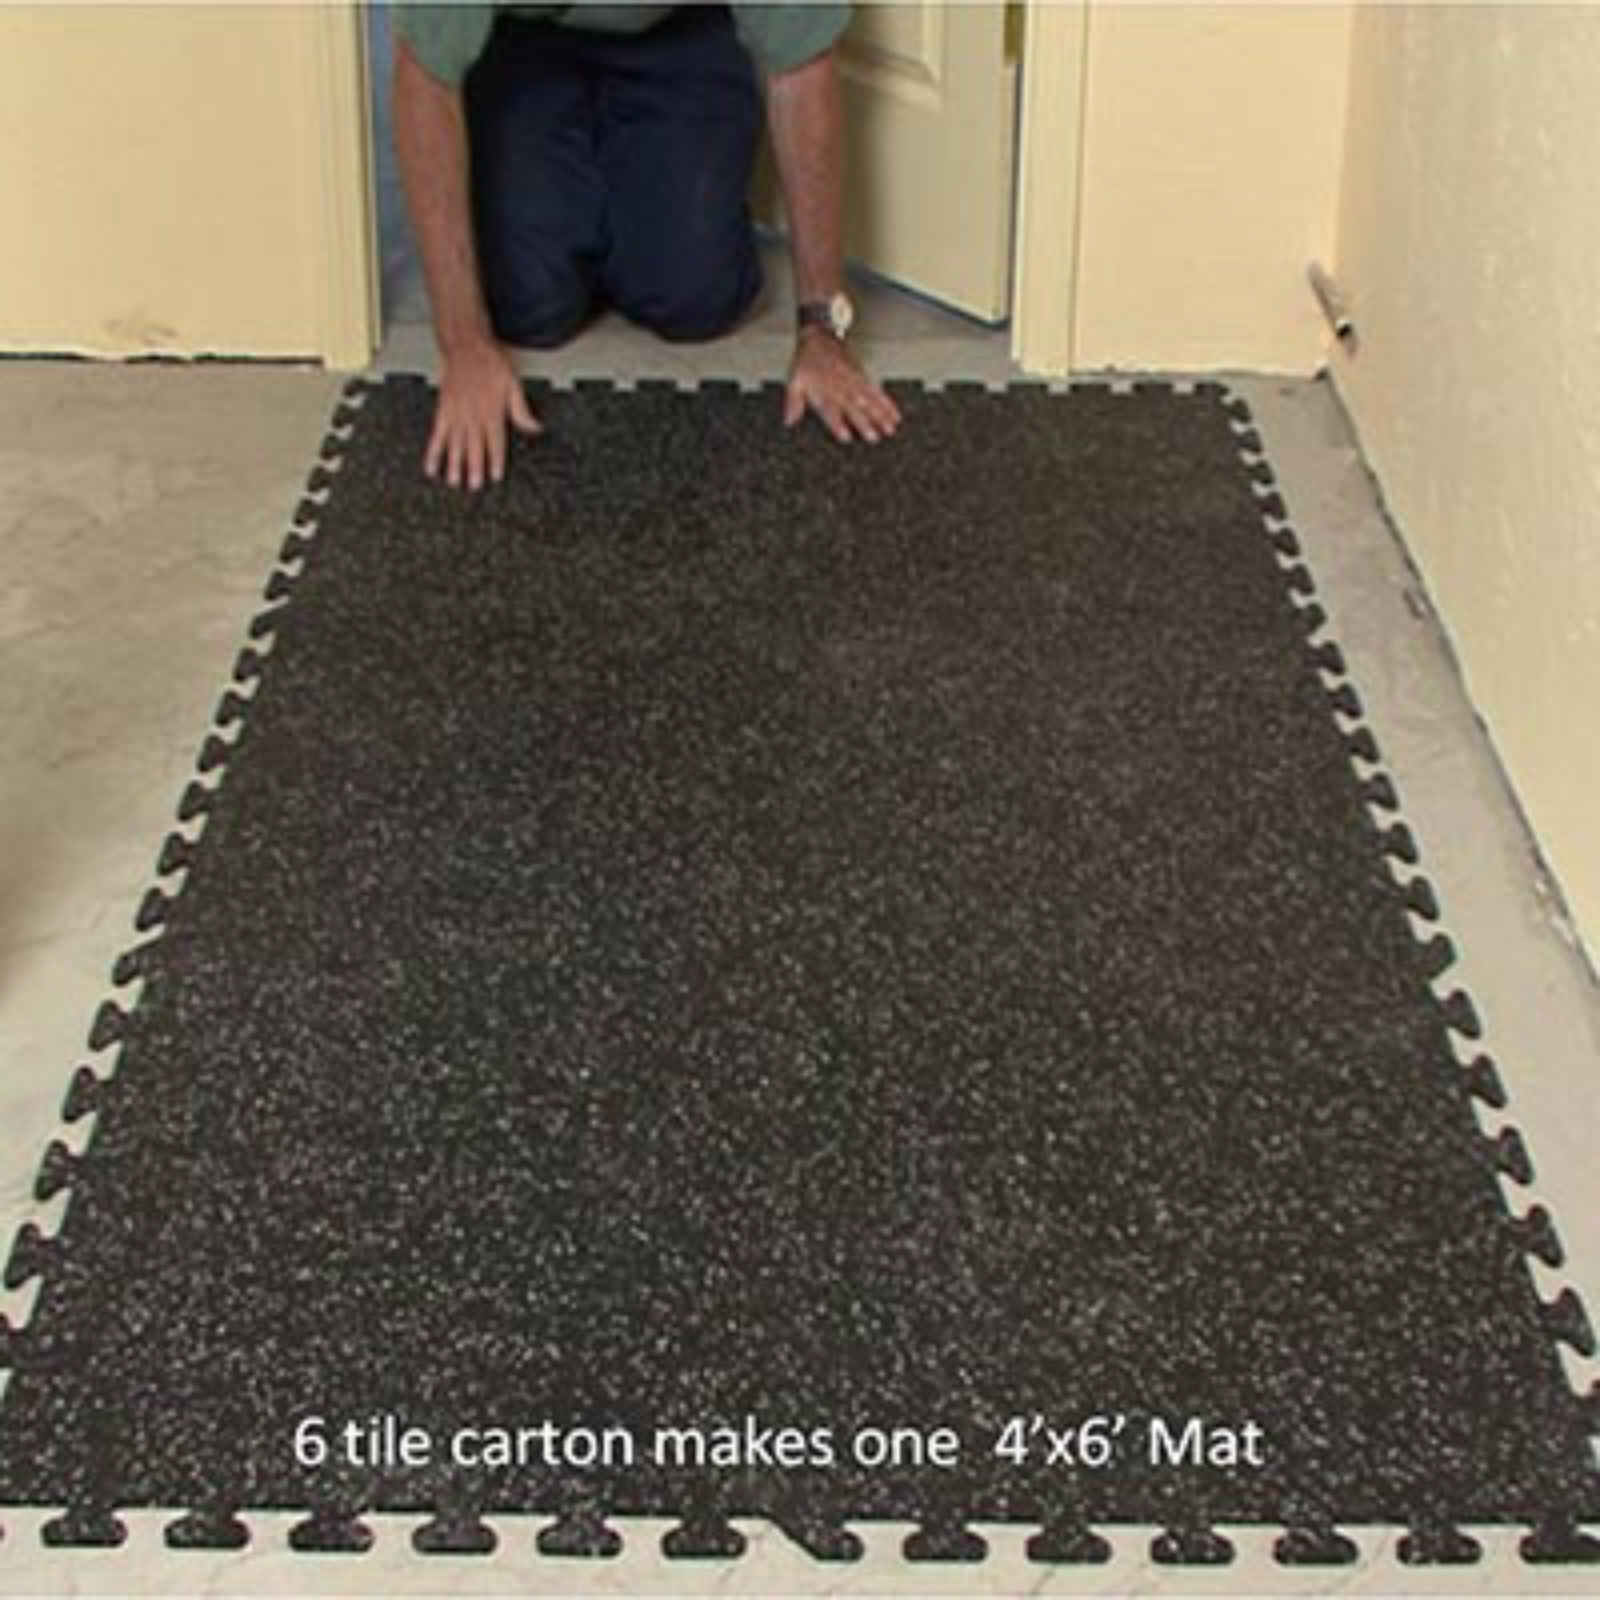 Ez-Flex Interlocking Rubber Floor Tiles - New - Floor Mats,Floor Tiles, Flooring